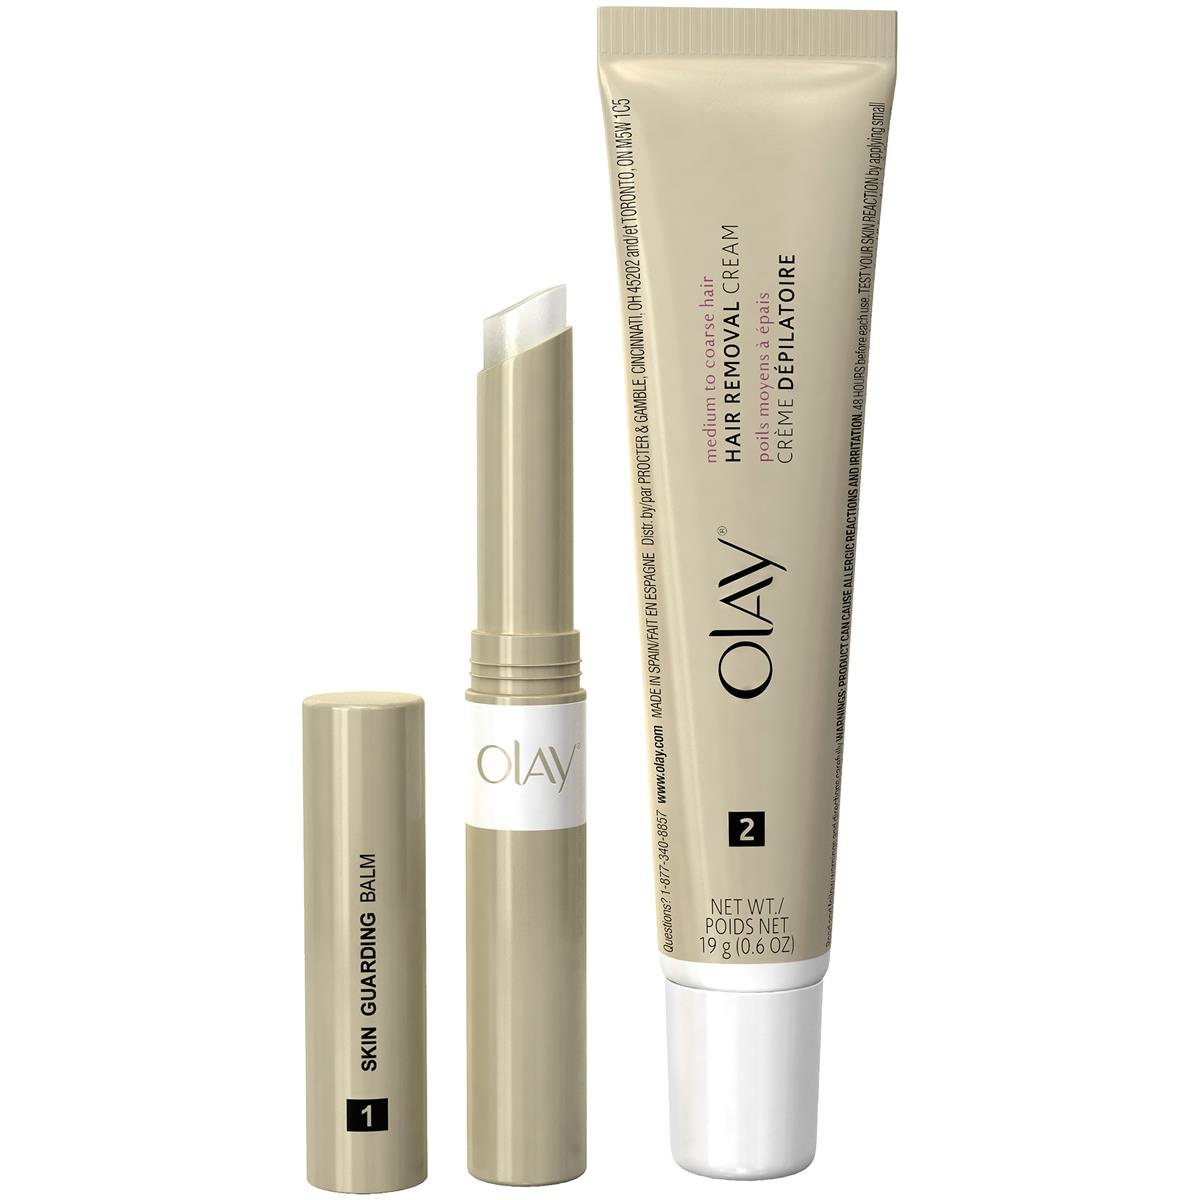 Best for Facial Hair: Olay Smooth Finish Facial Hair Removal Duo Kit